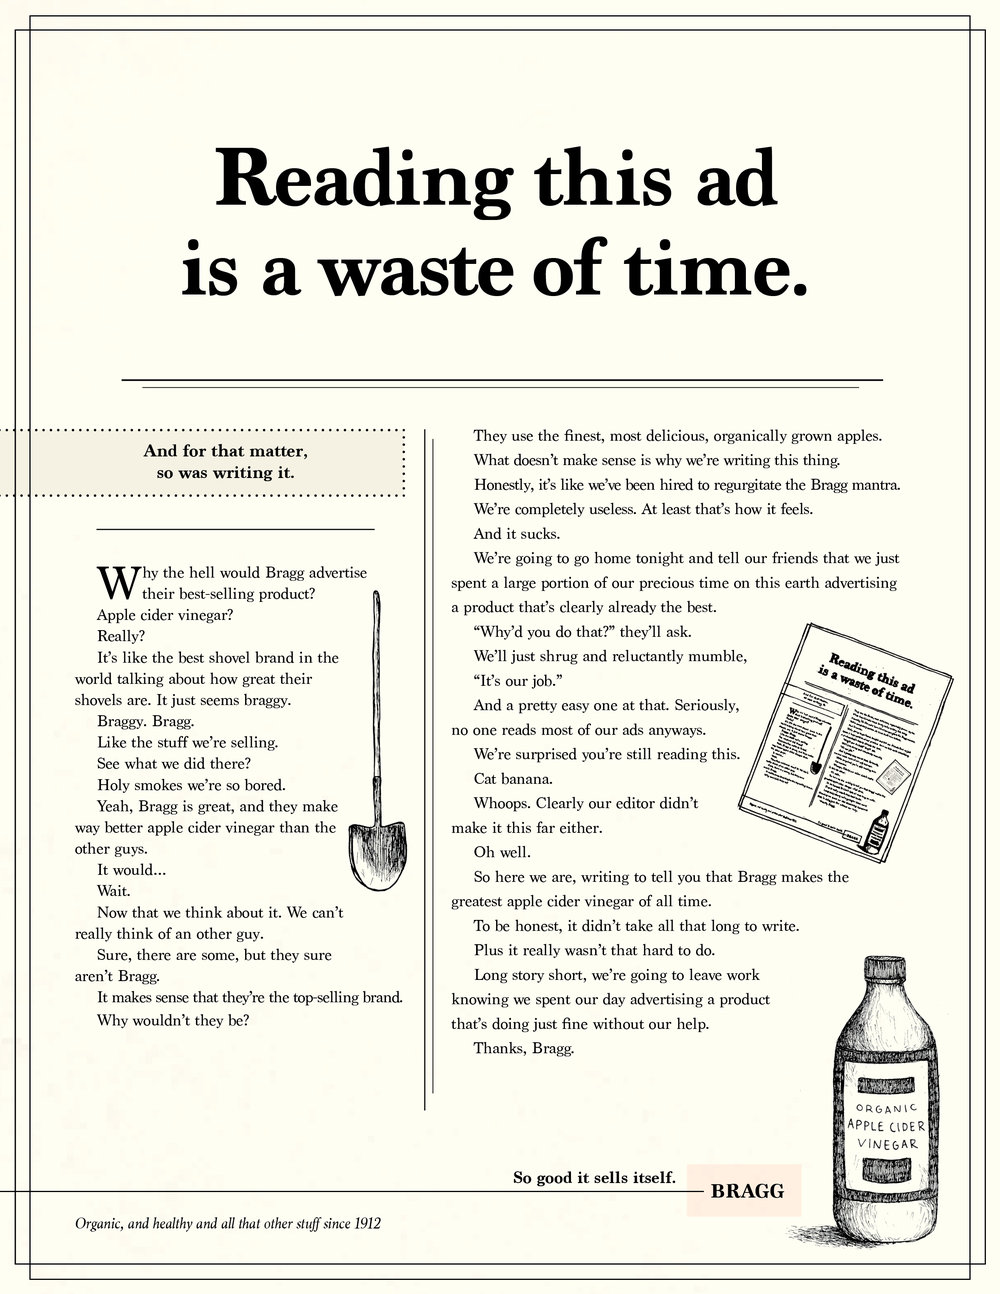 Bragg's Long Copy Ads2.jpg